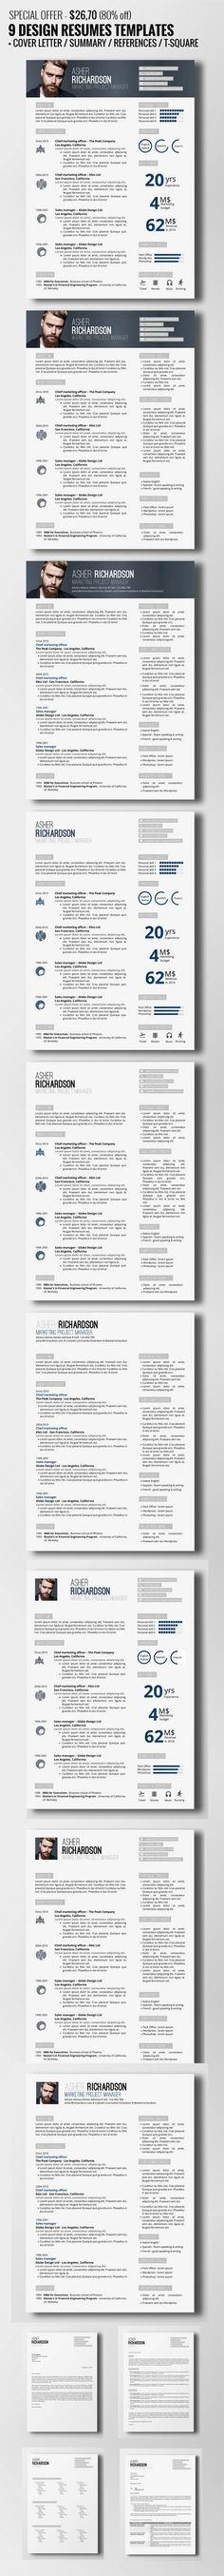 435 best Resume images on Pinterest Resume design, Design resume - group home worker sample resume